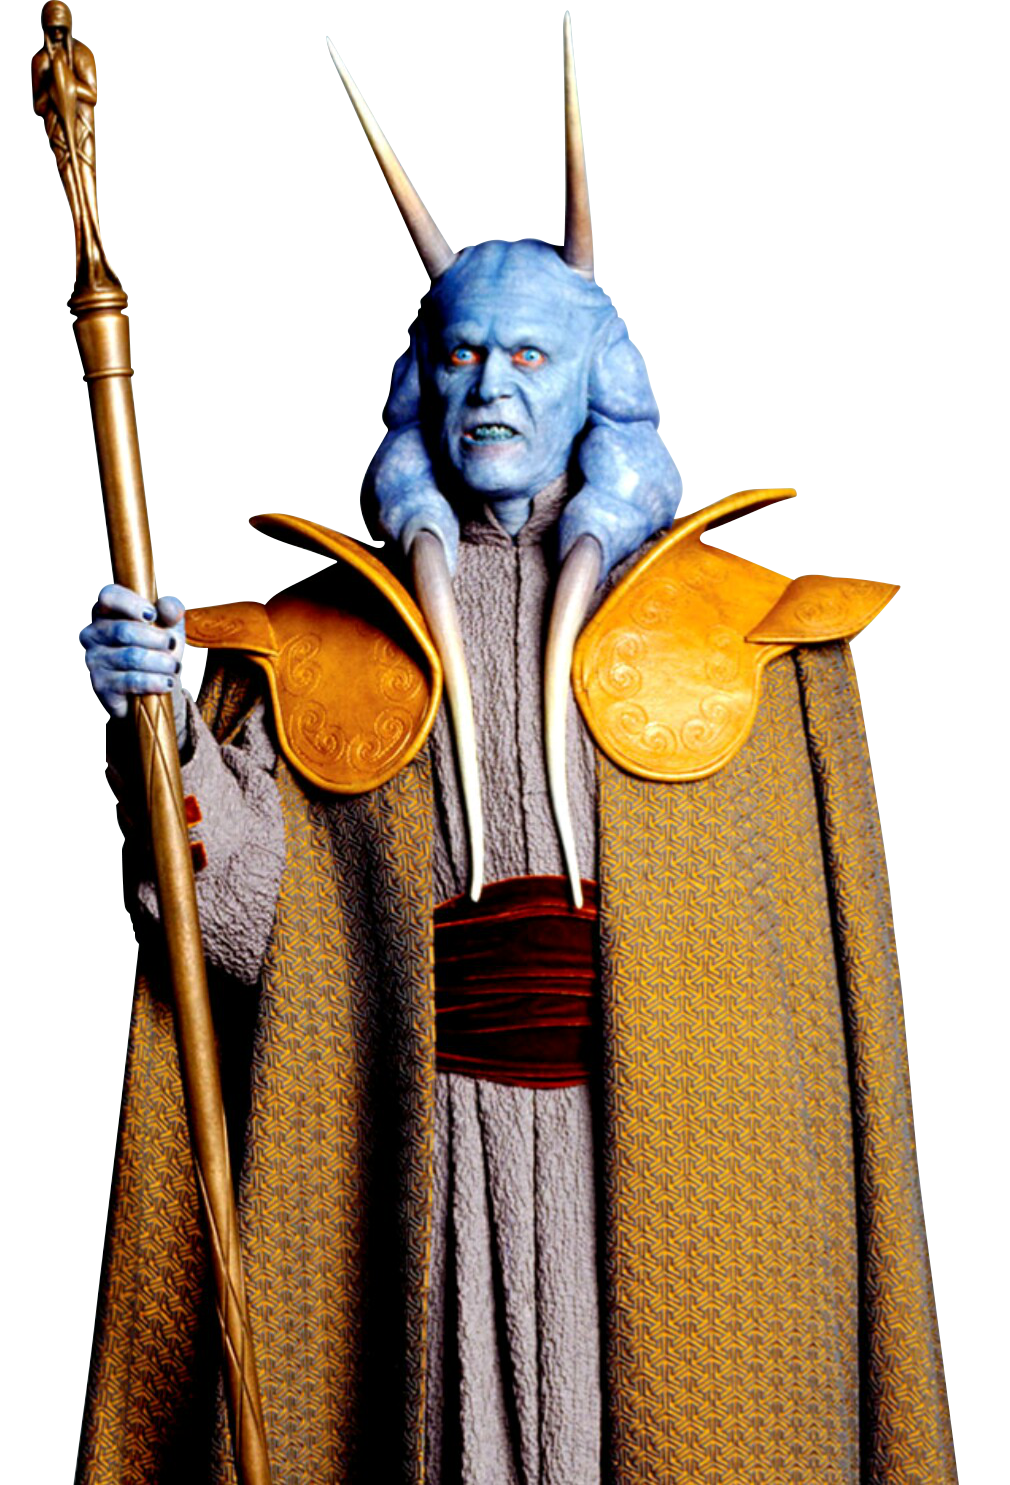 Vicepresidente Star Wars Wiki Fandom Mas amedda was a chagrian male politician who served as vice chair of the galactic senate in the galactic republic, and later as grand vizier of the galactic empire. vicepresidente star wars wiki fandom